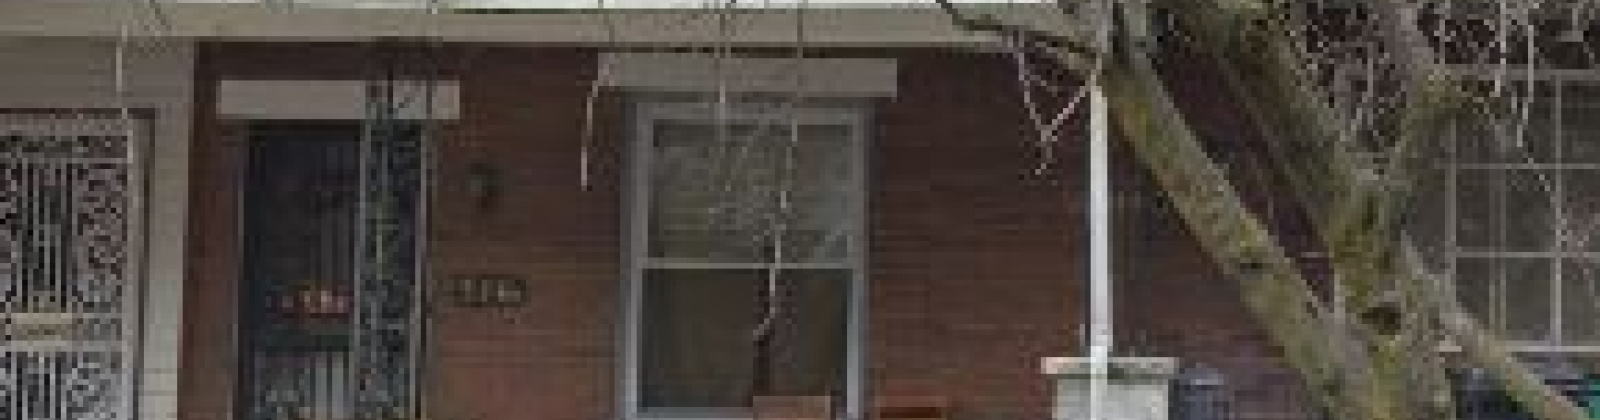 3 Bedrooms Bedrooms, ,1 BathroomBathrooms,Single Family Home,For Sale,1353